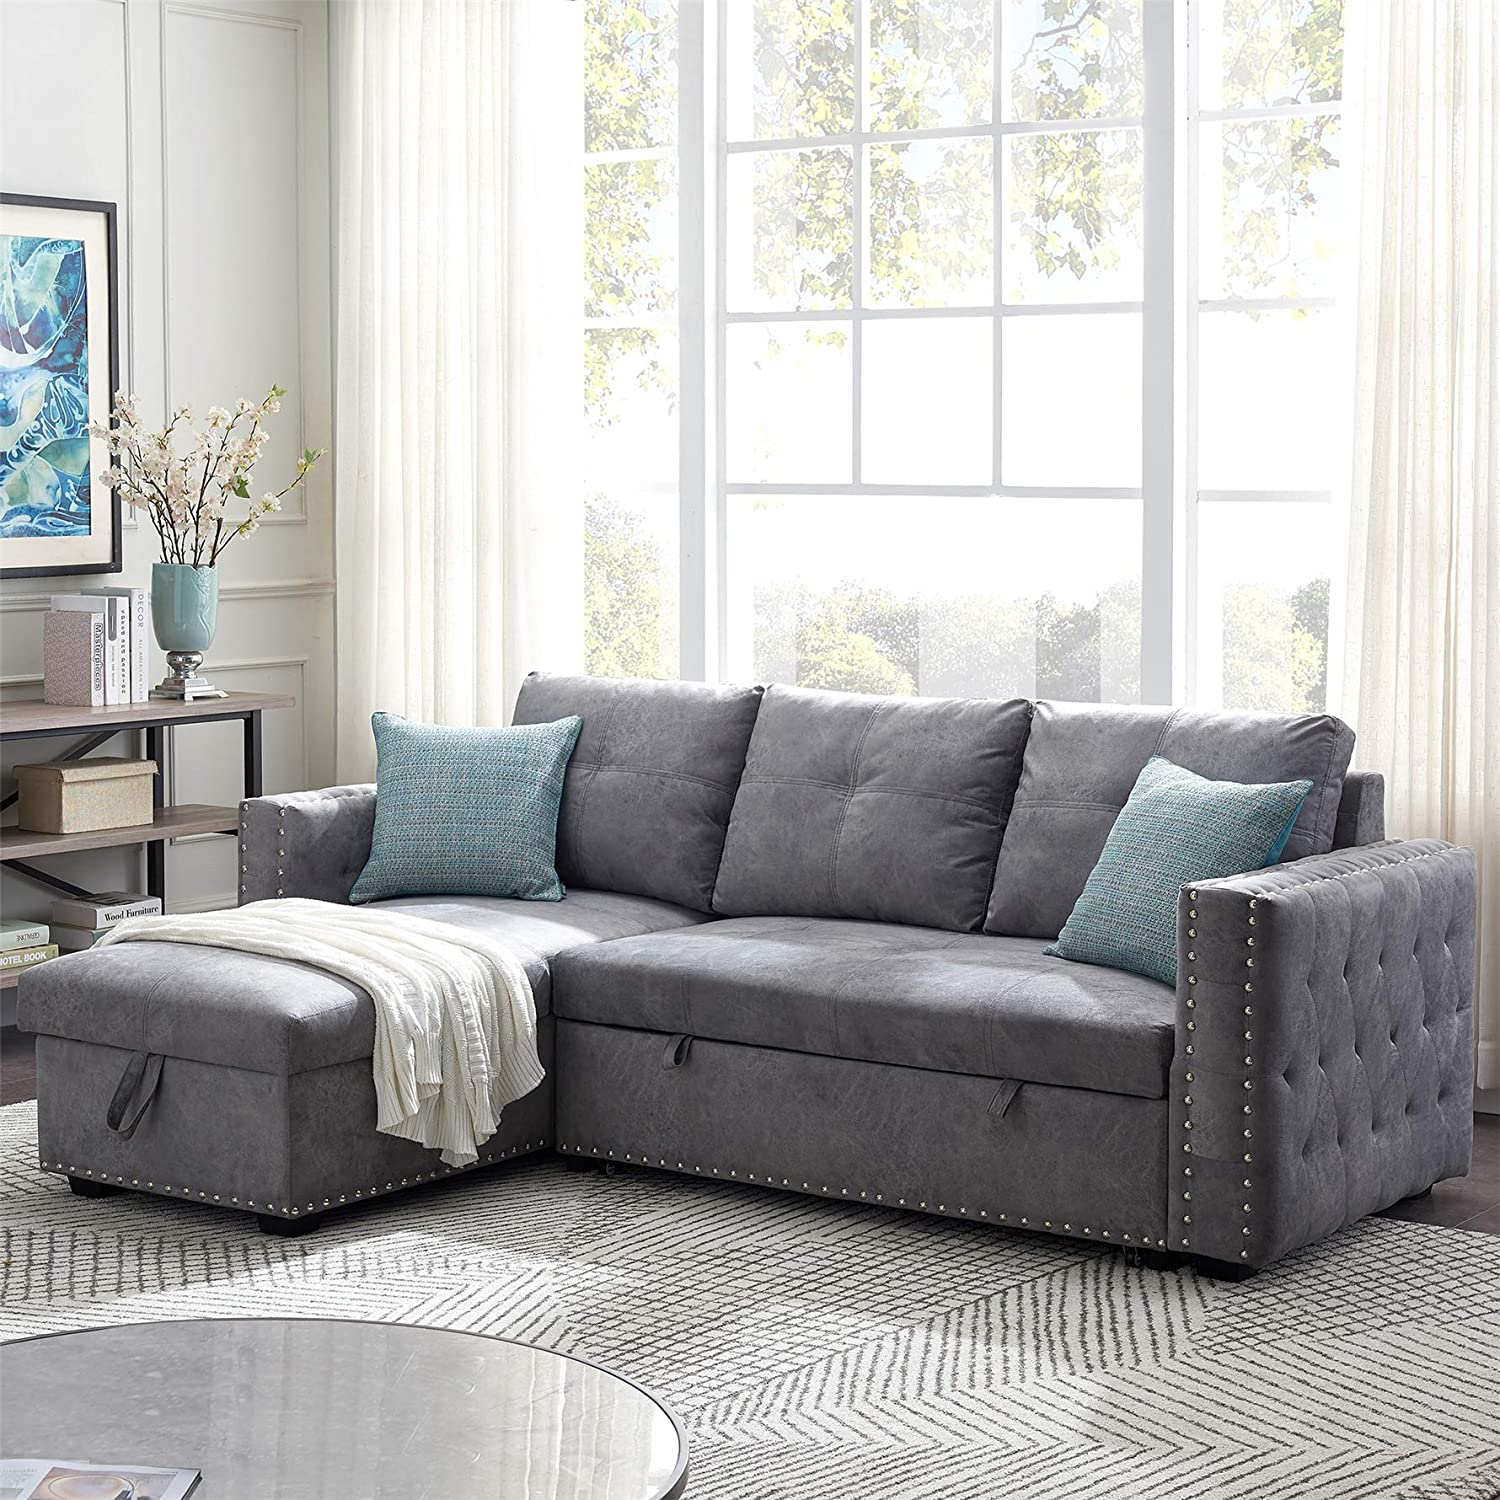 Reversible 5 popular Sleeper Sofa Sectional Pull with Out Financial sales sale Bed